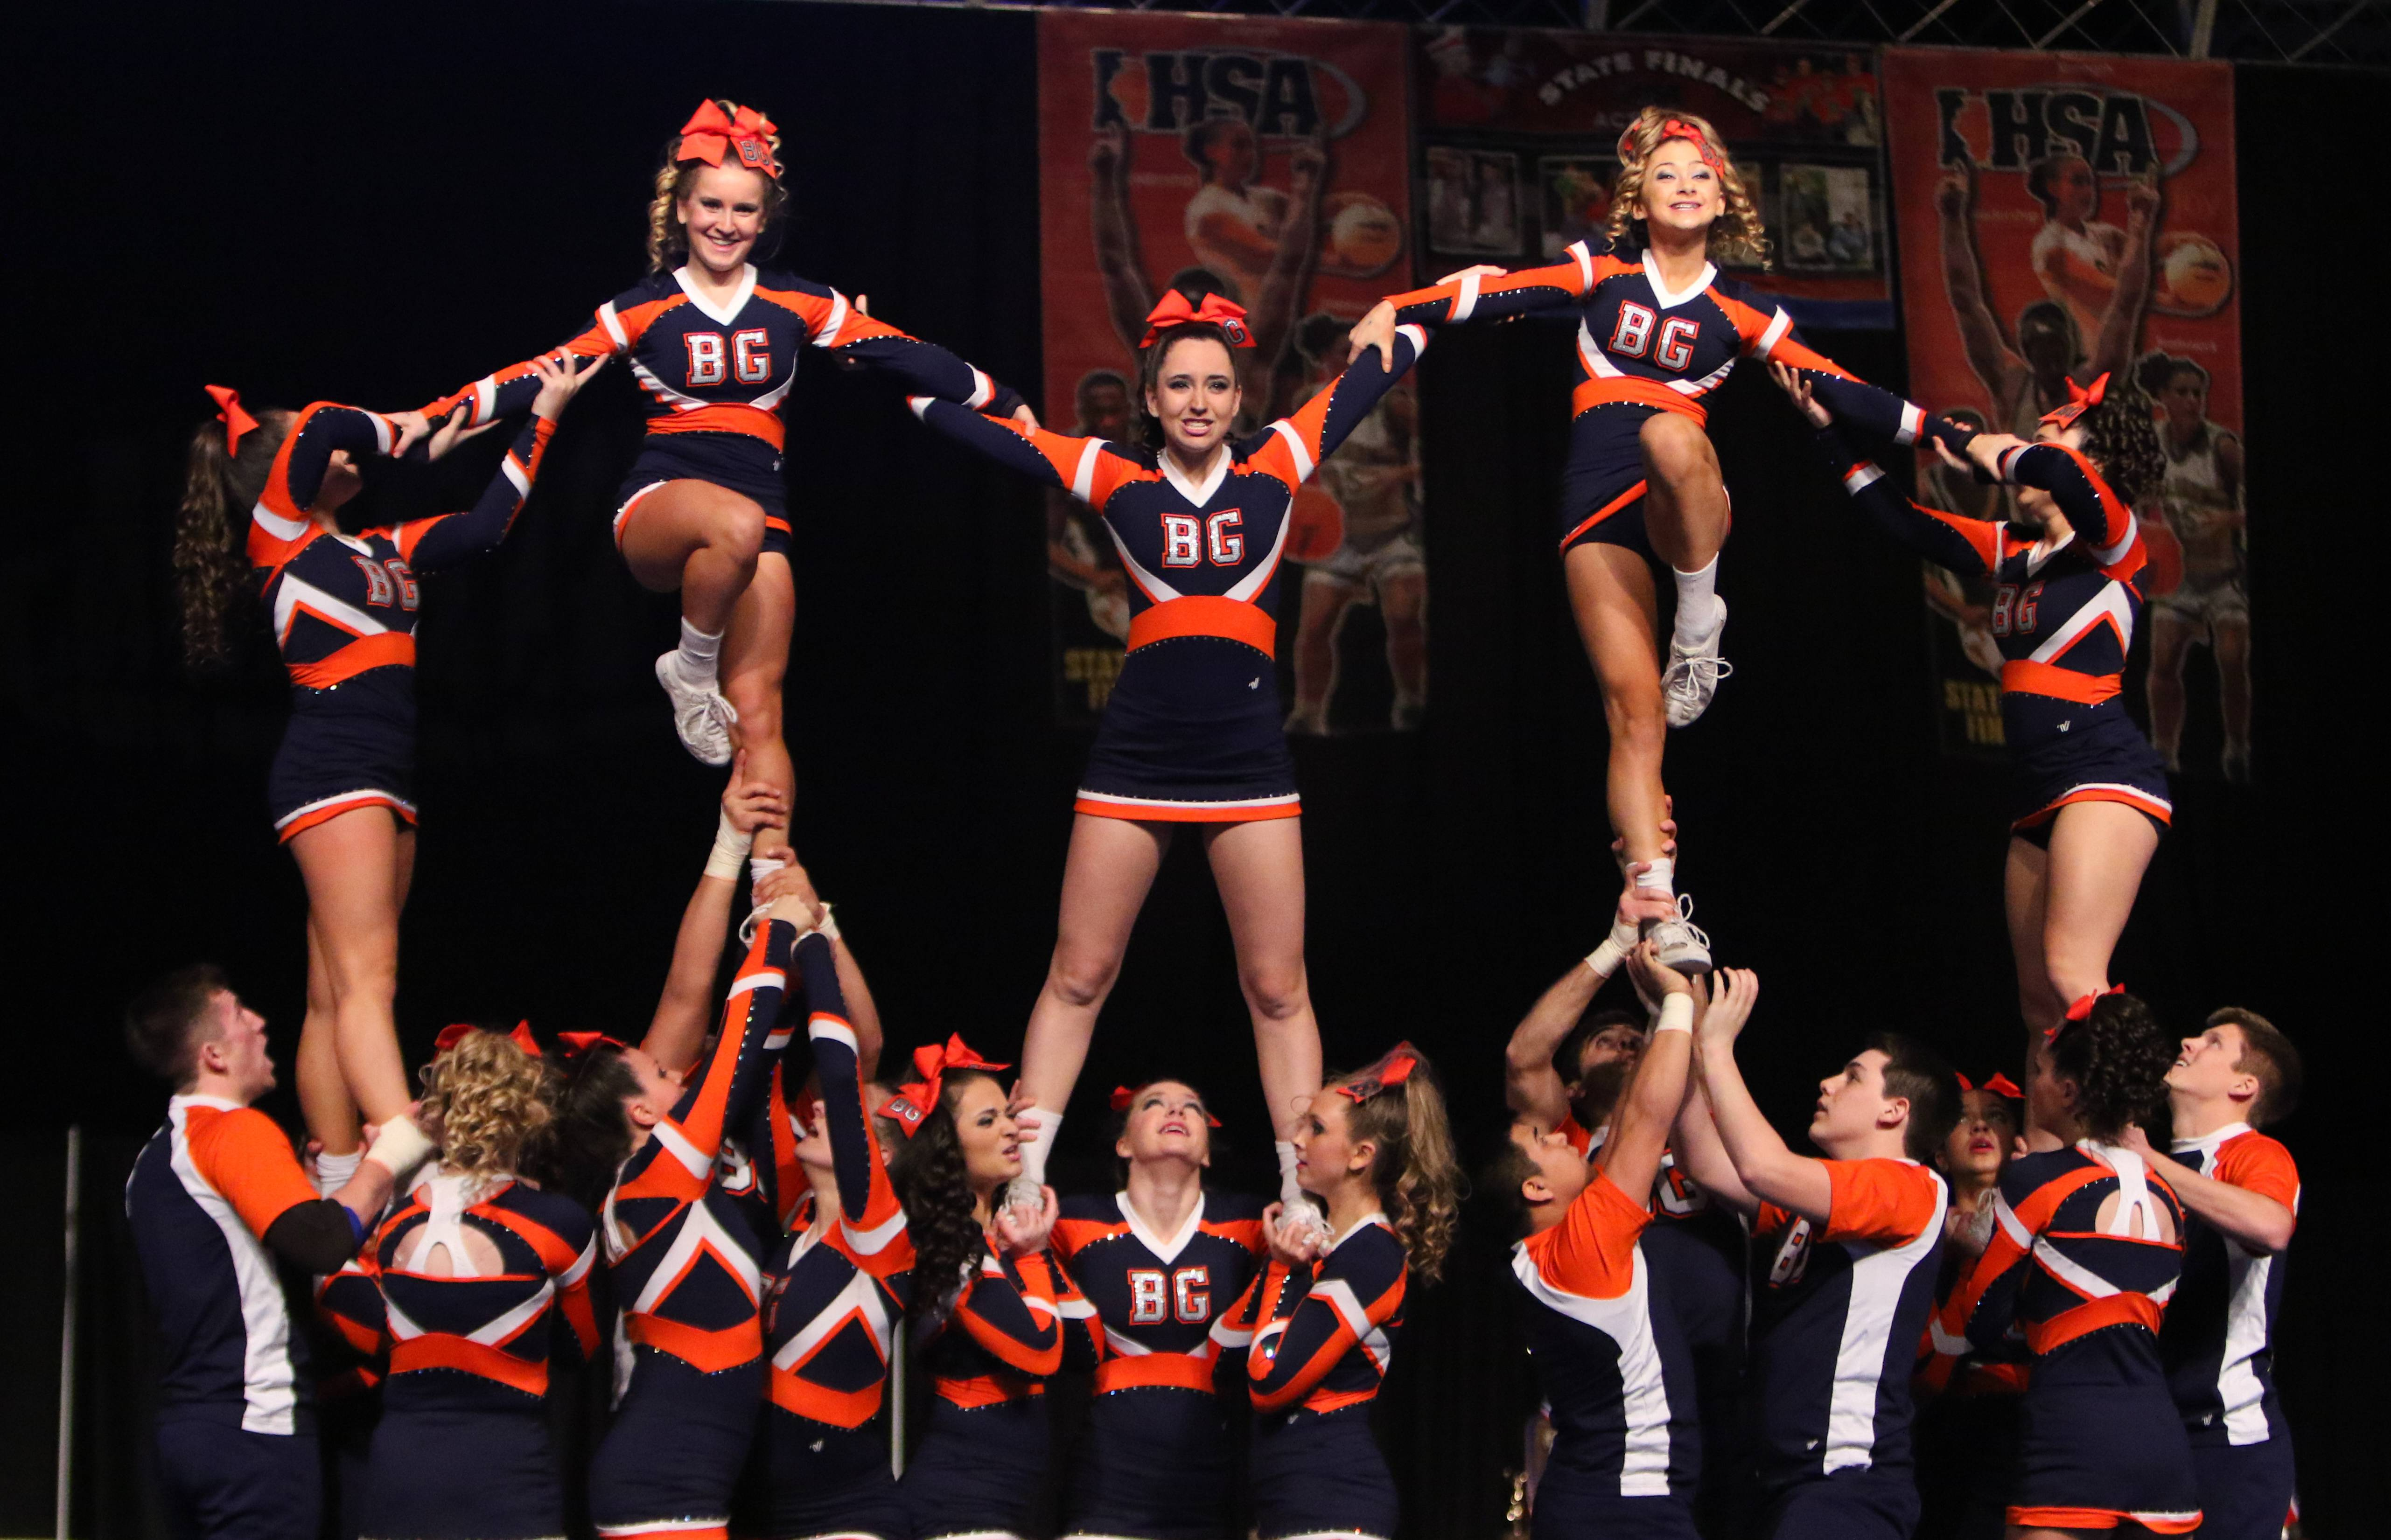 Buffalo Grove High School's coed squad competes during Friday's preliminary round at the state cheerleading championships in Bloomington. Buffalo Grove advanced to Saturday's final with the best preliminary score in its division..